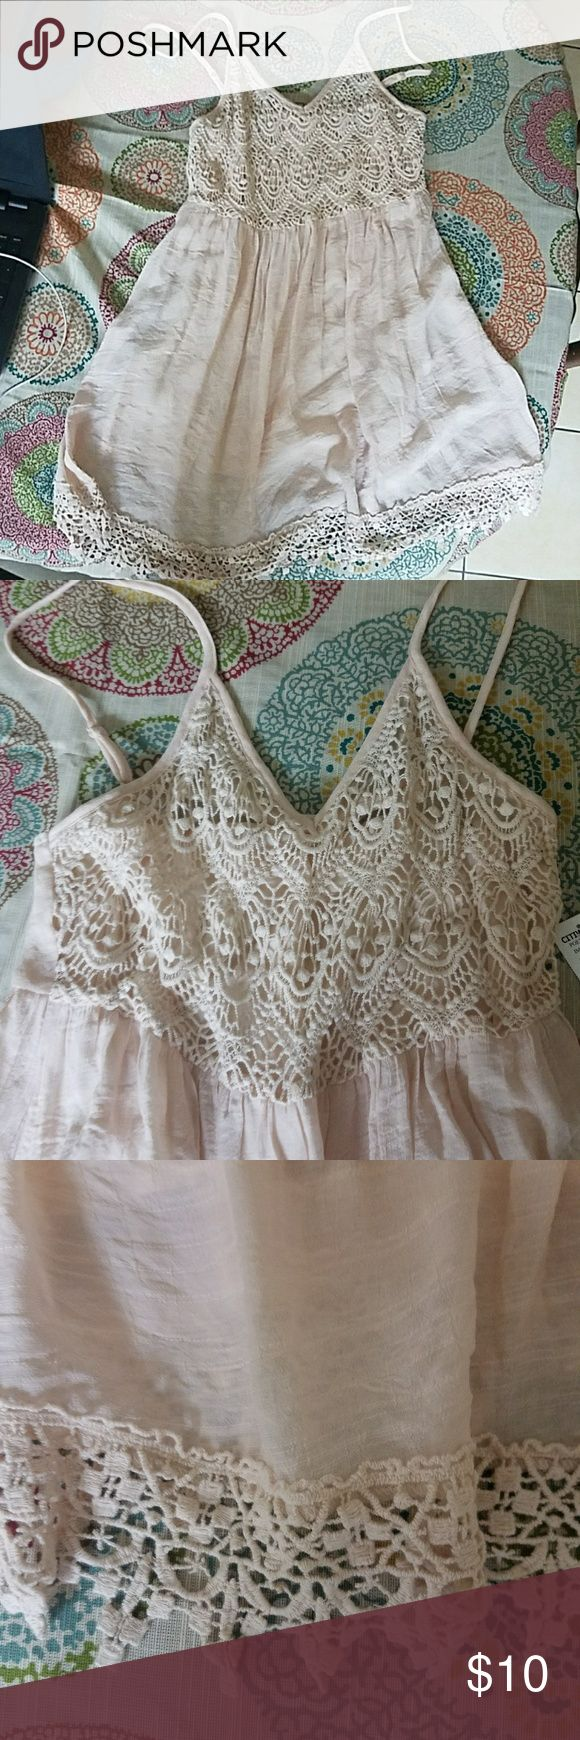 Cream colored dress with lace Cream colored dress with lace on the top and bottom. Dresses Mini